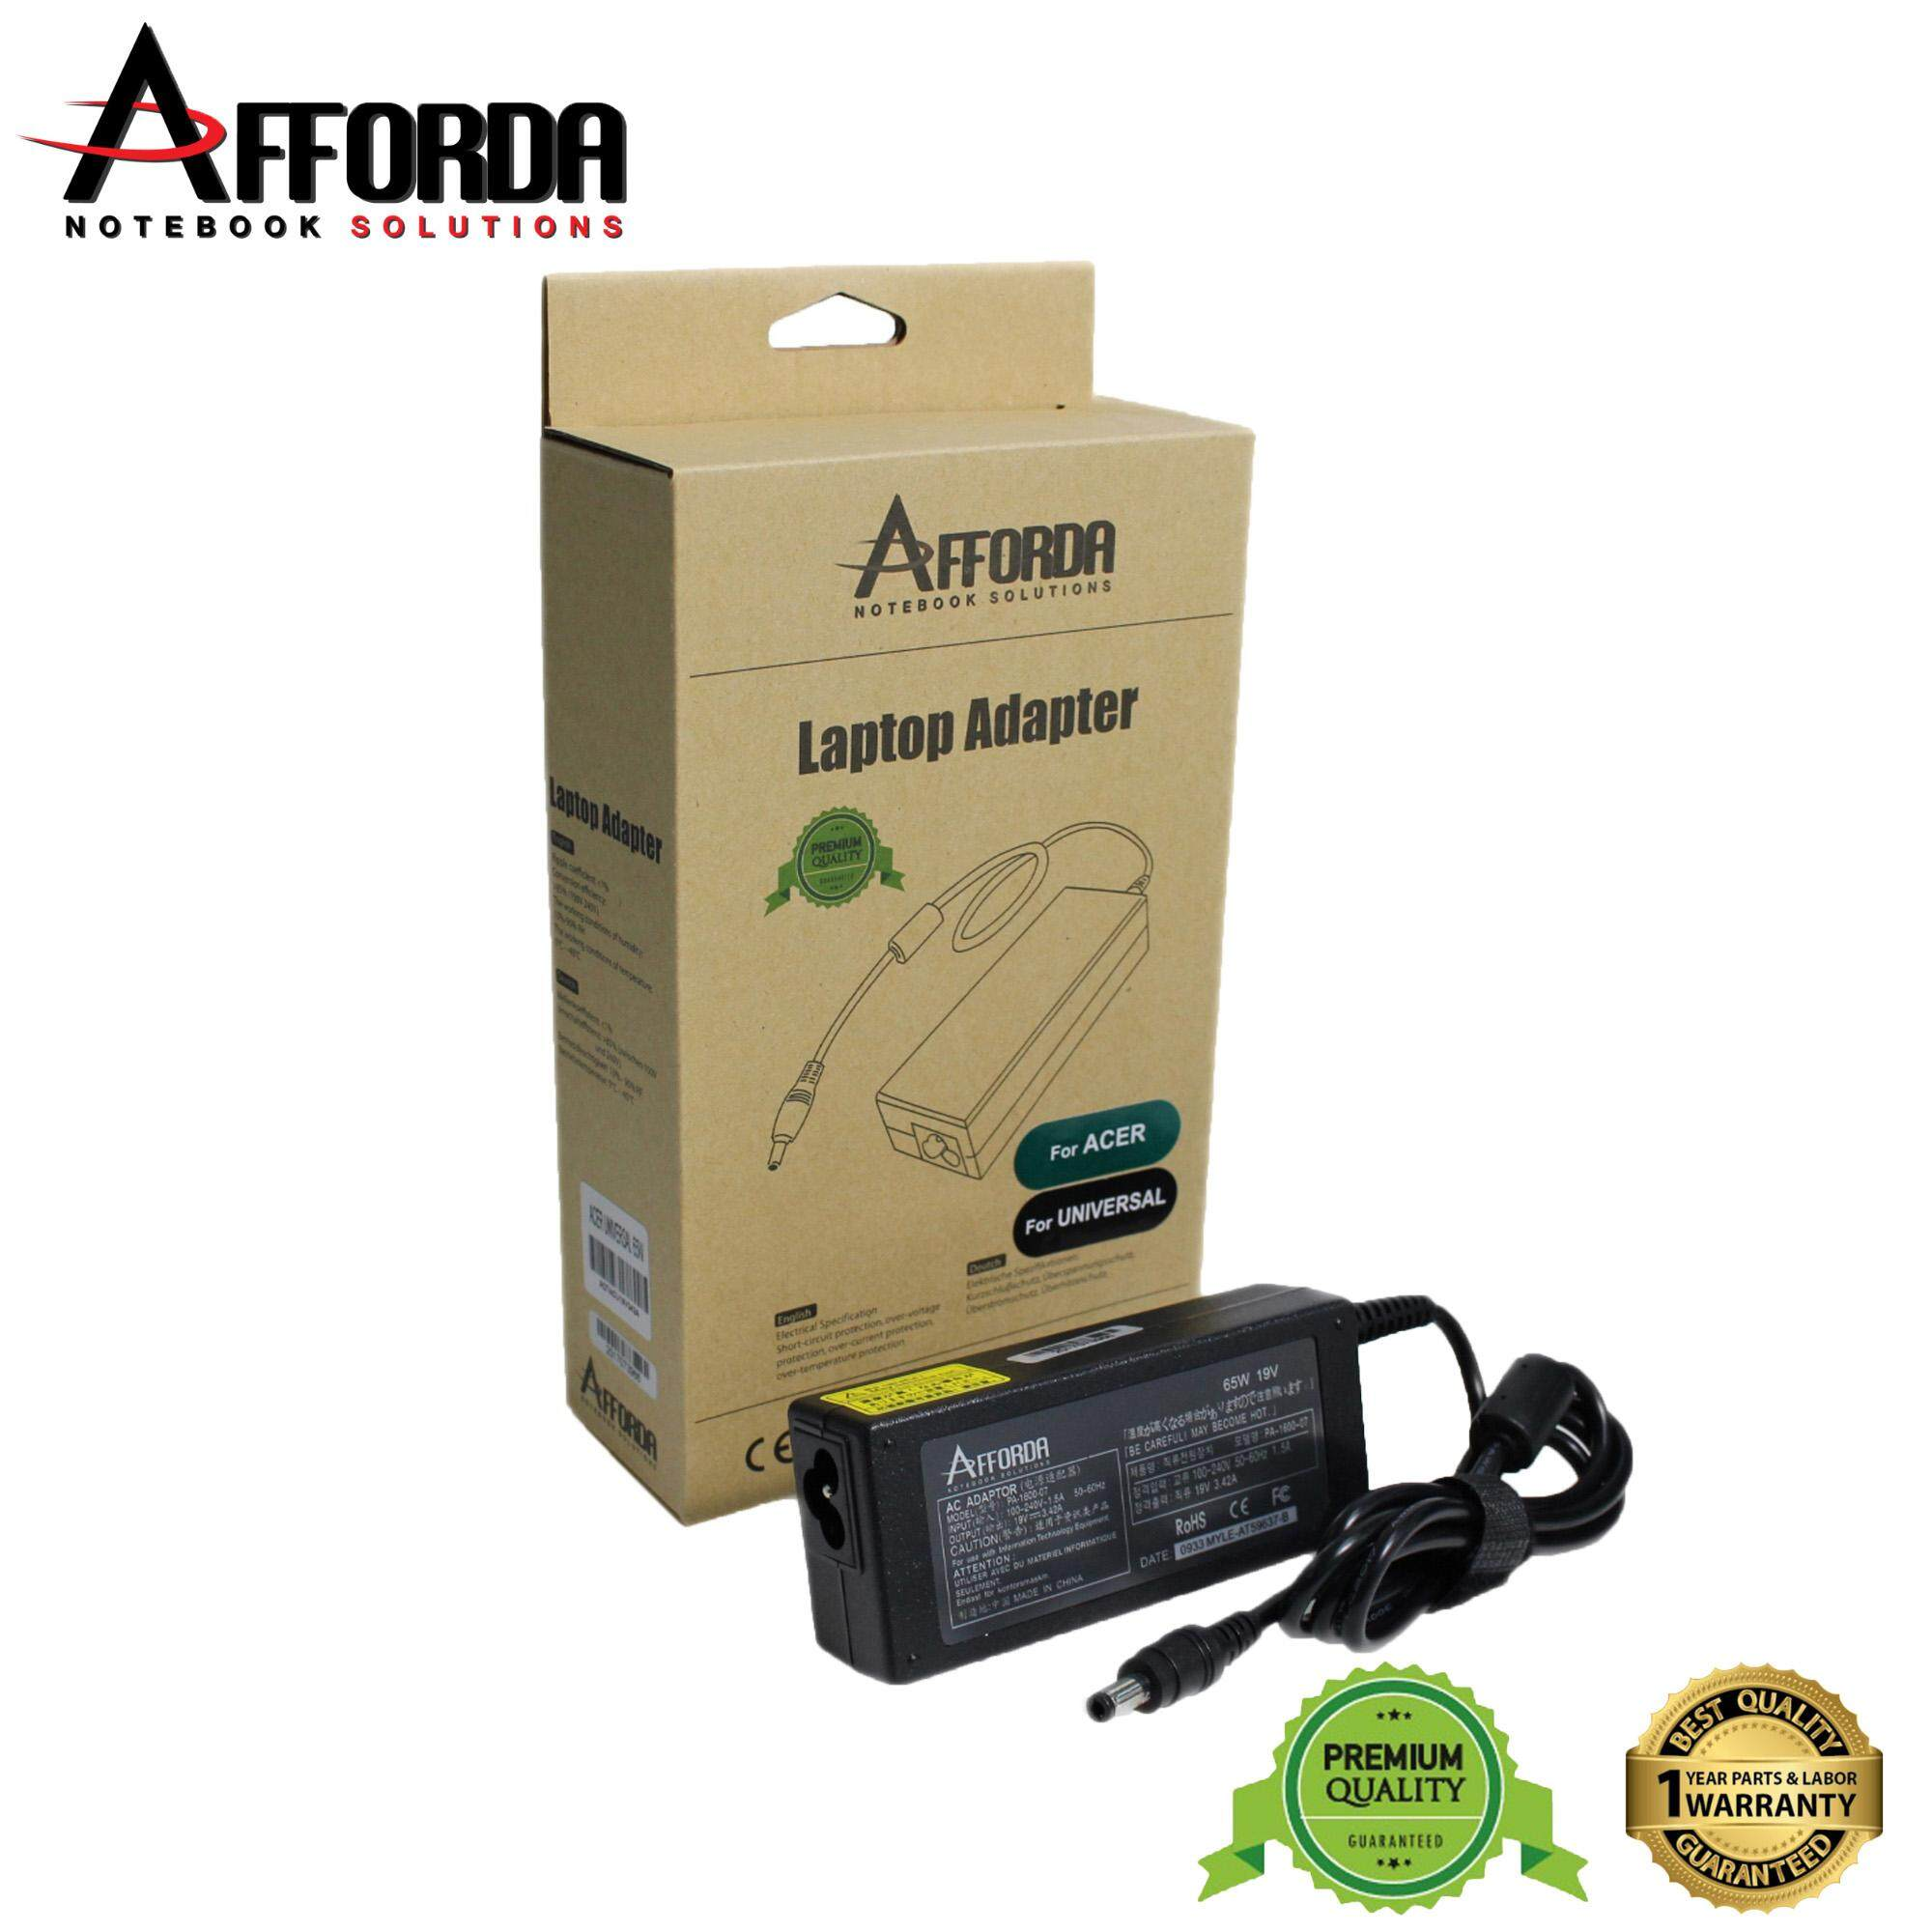 AFFORDA ACER UNIVERSAL ADAPTER 65W FOR ACER NOTEBOOK